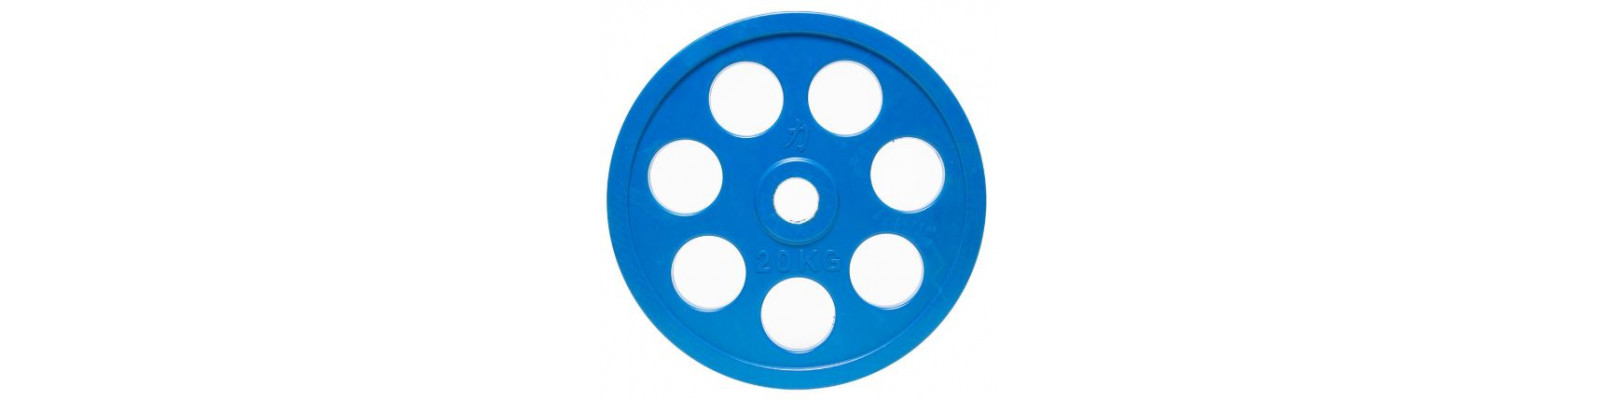 Rubber Coated Cast Iron Plates